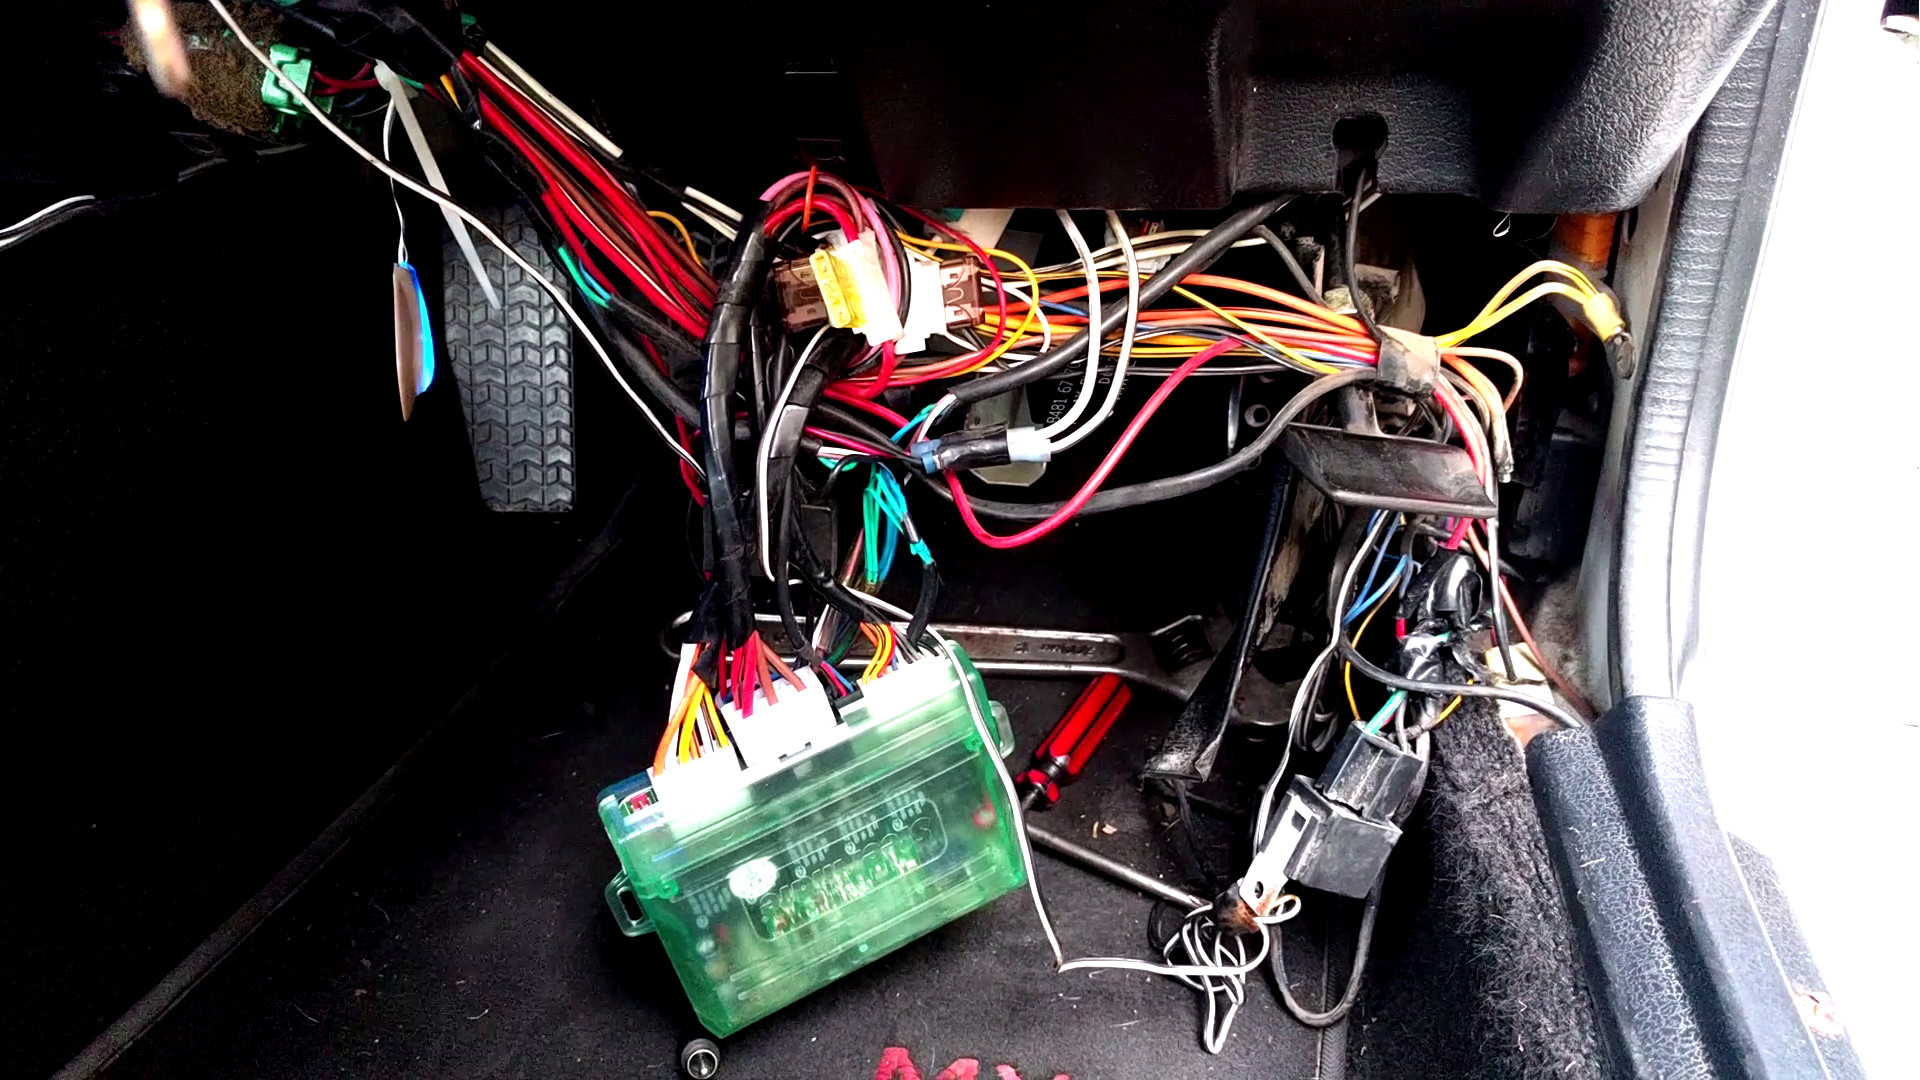 medium resolution of bmw fuse panel wiper relay junction box electronics dash removed bmw fuse panel wiper relay junction box electronics dash removed